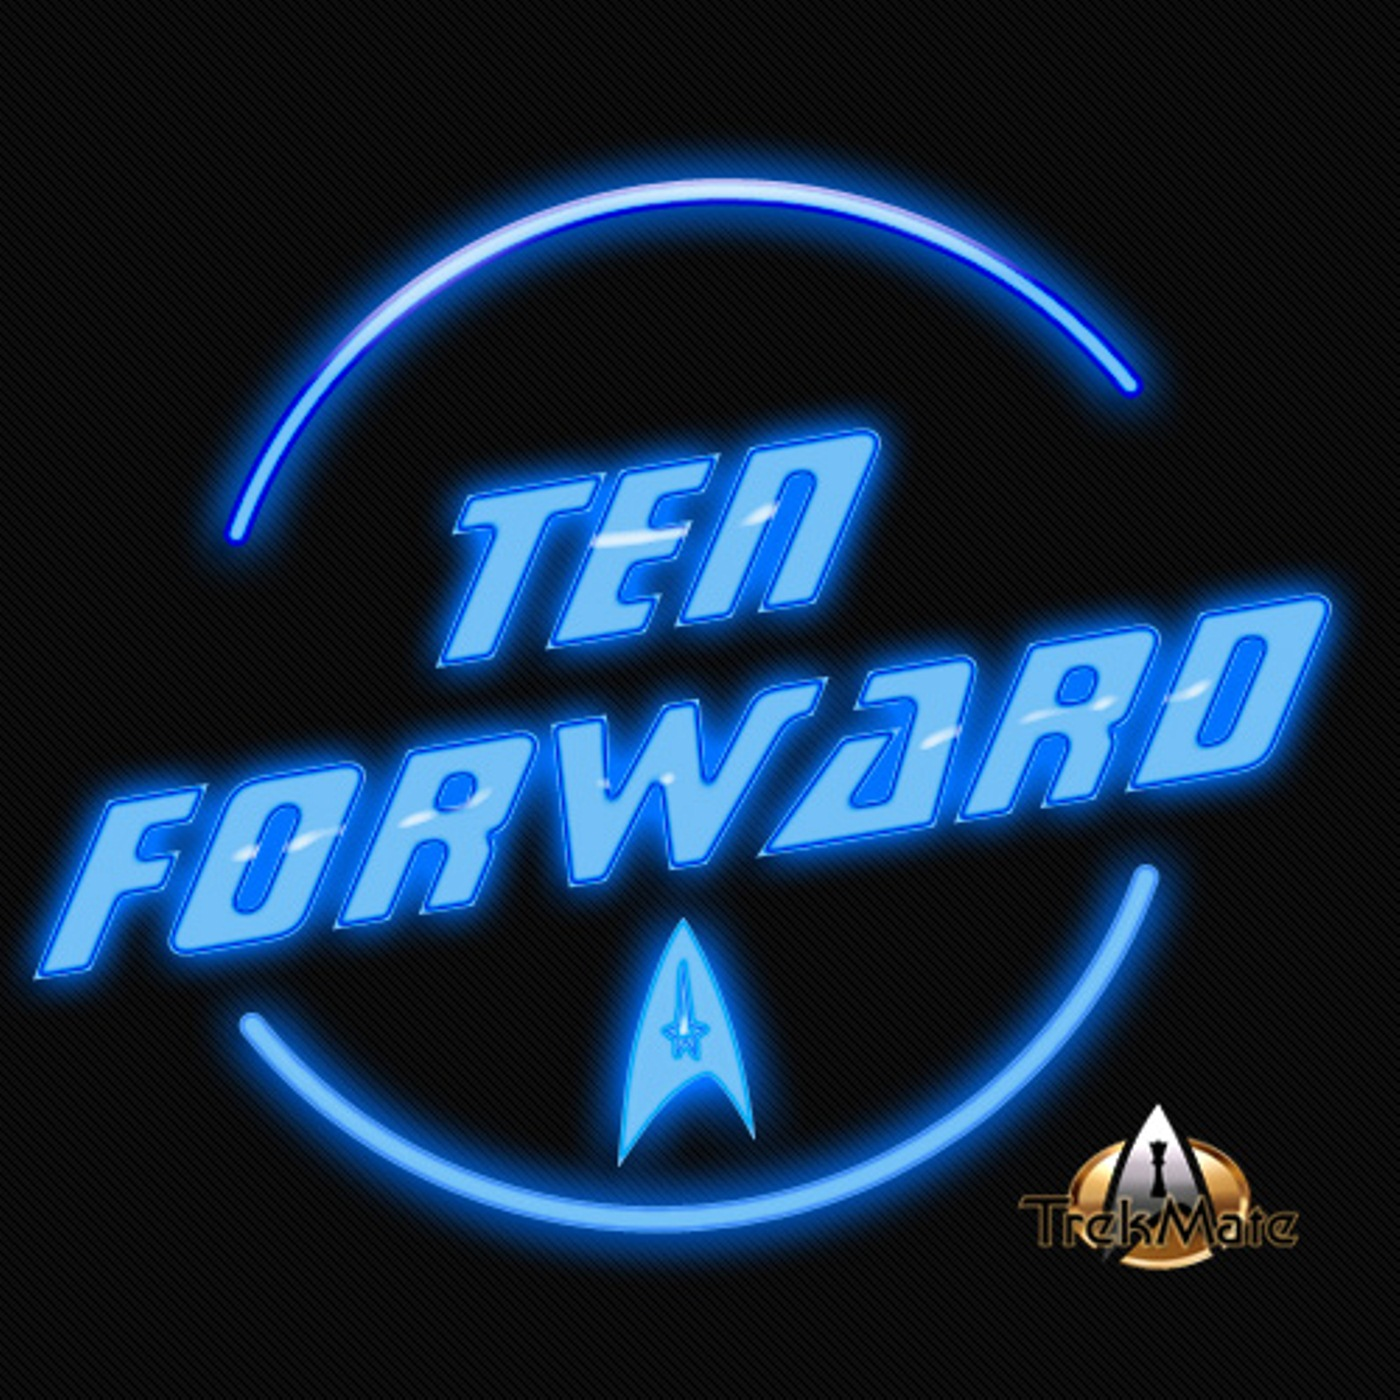 Trek Mate: Ten Forward